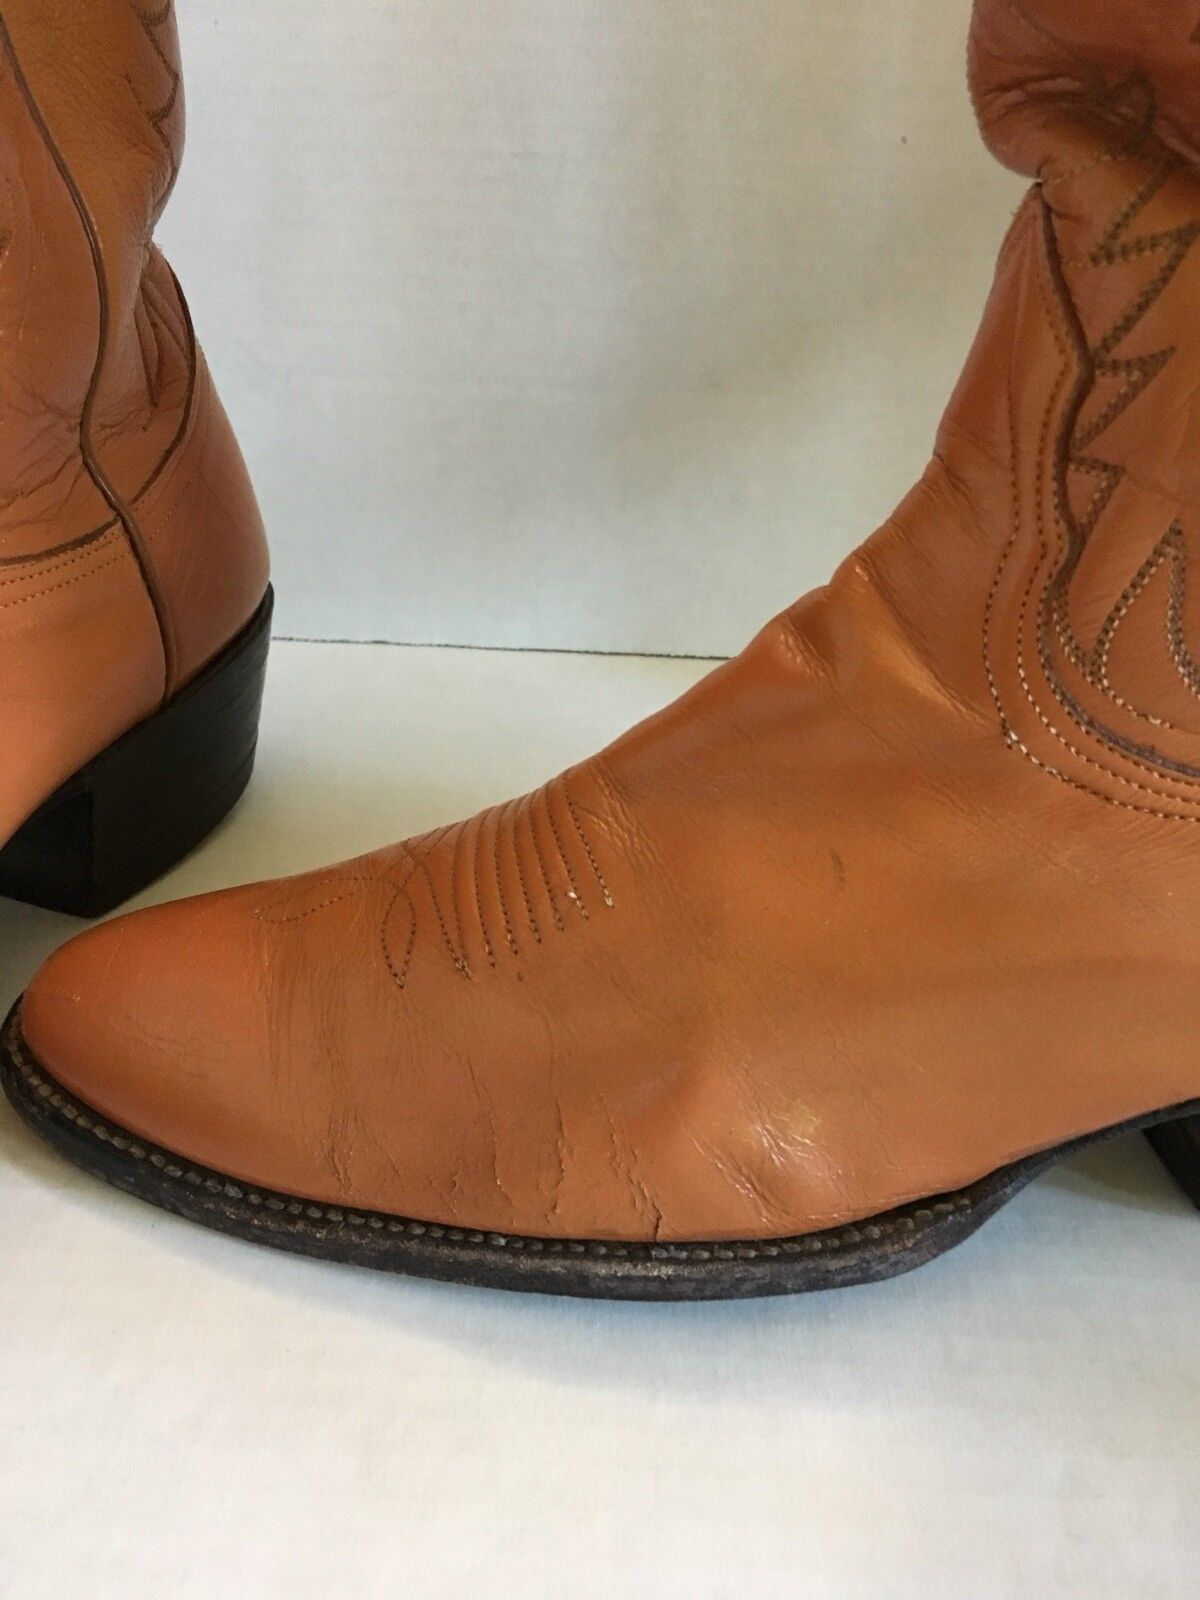 Men's Nocona Texas Western Cowboy Boot Inserts Braun 9.5 B Metal Inserts Boot Included af1437